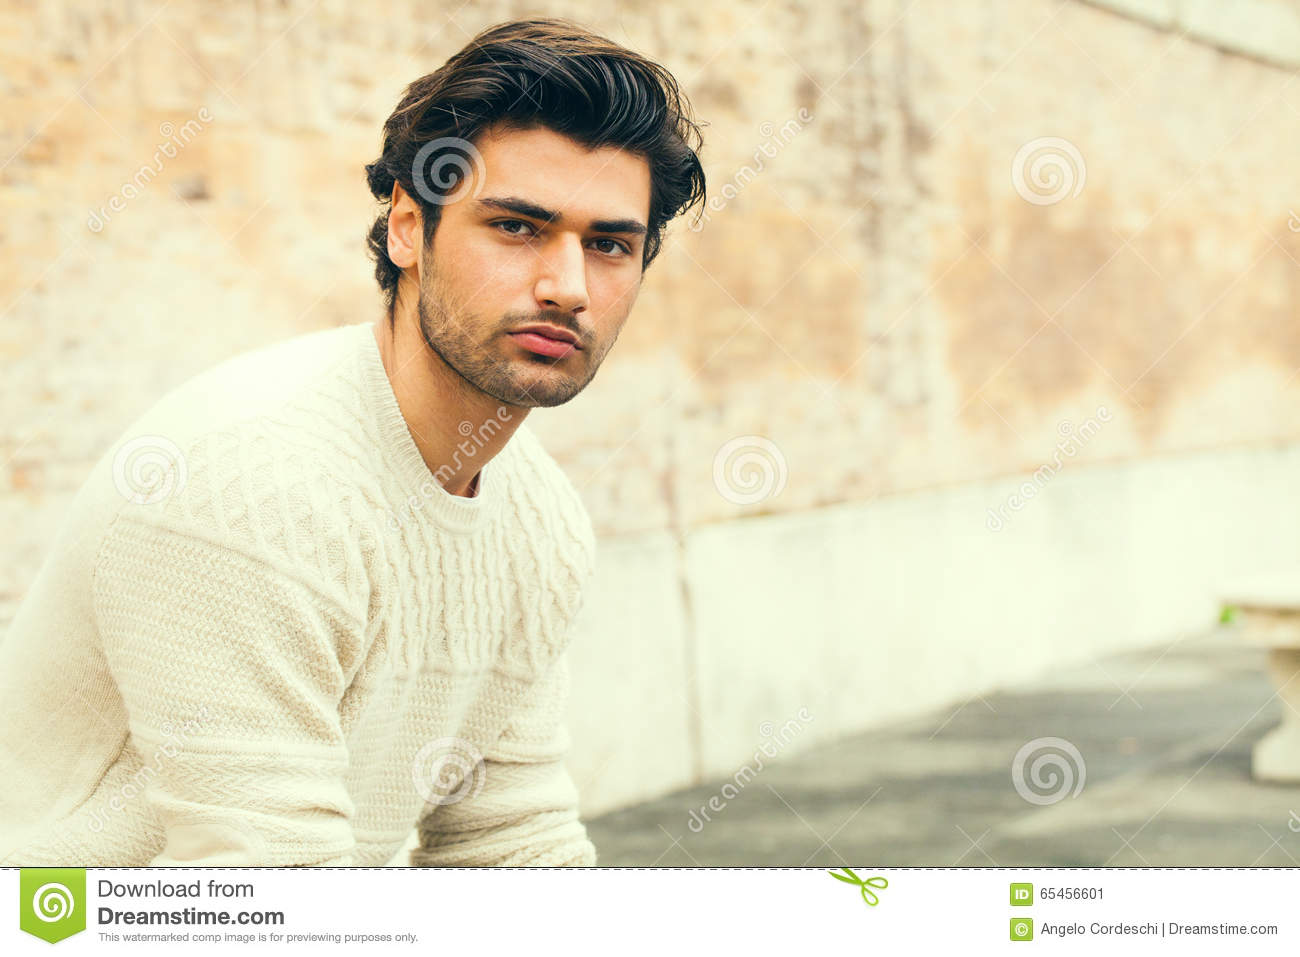 Handsome Beautiful Young Man Outdoor Fashion Hairstyle Boy Looking Stylish Hair Charming Attractive Look Slight Beard